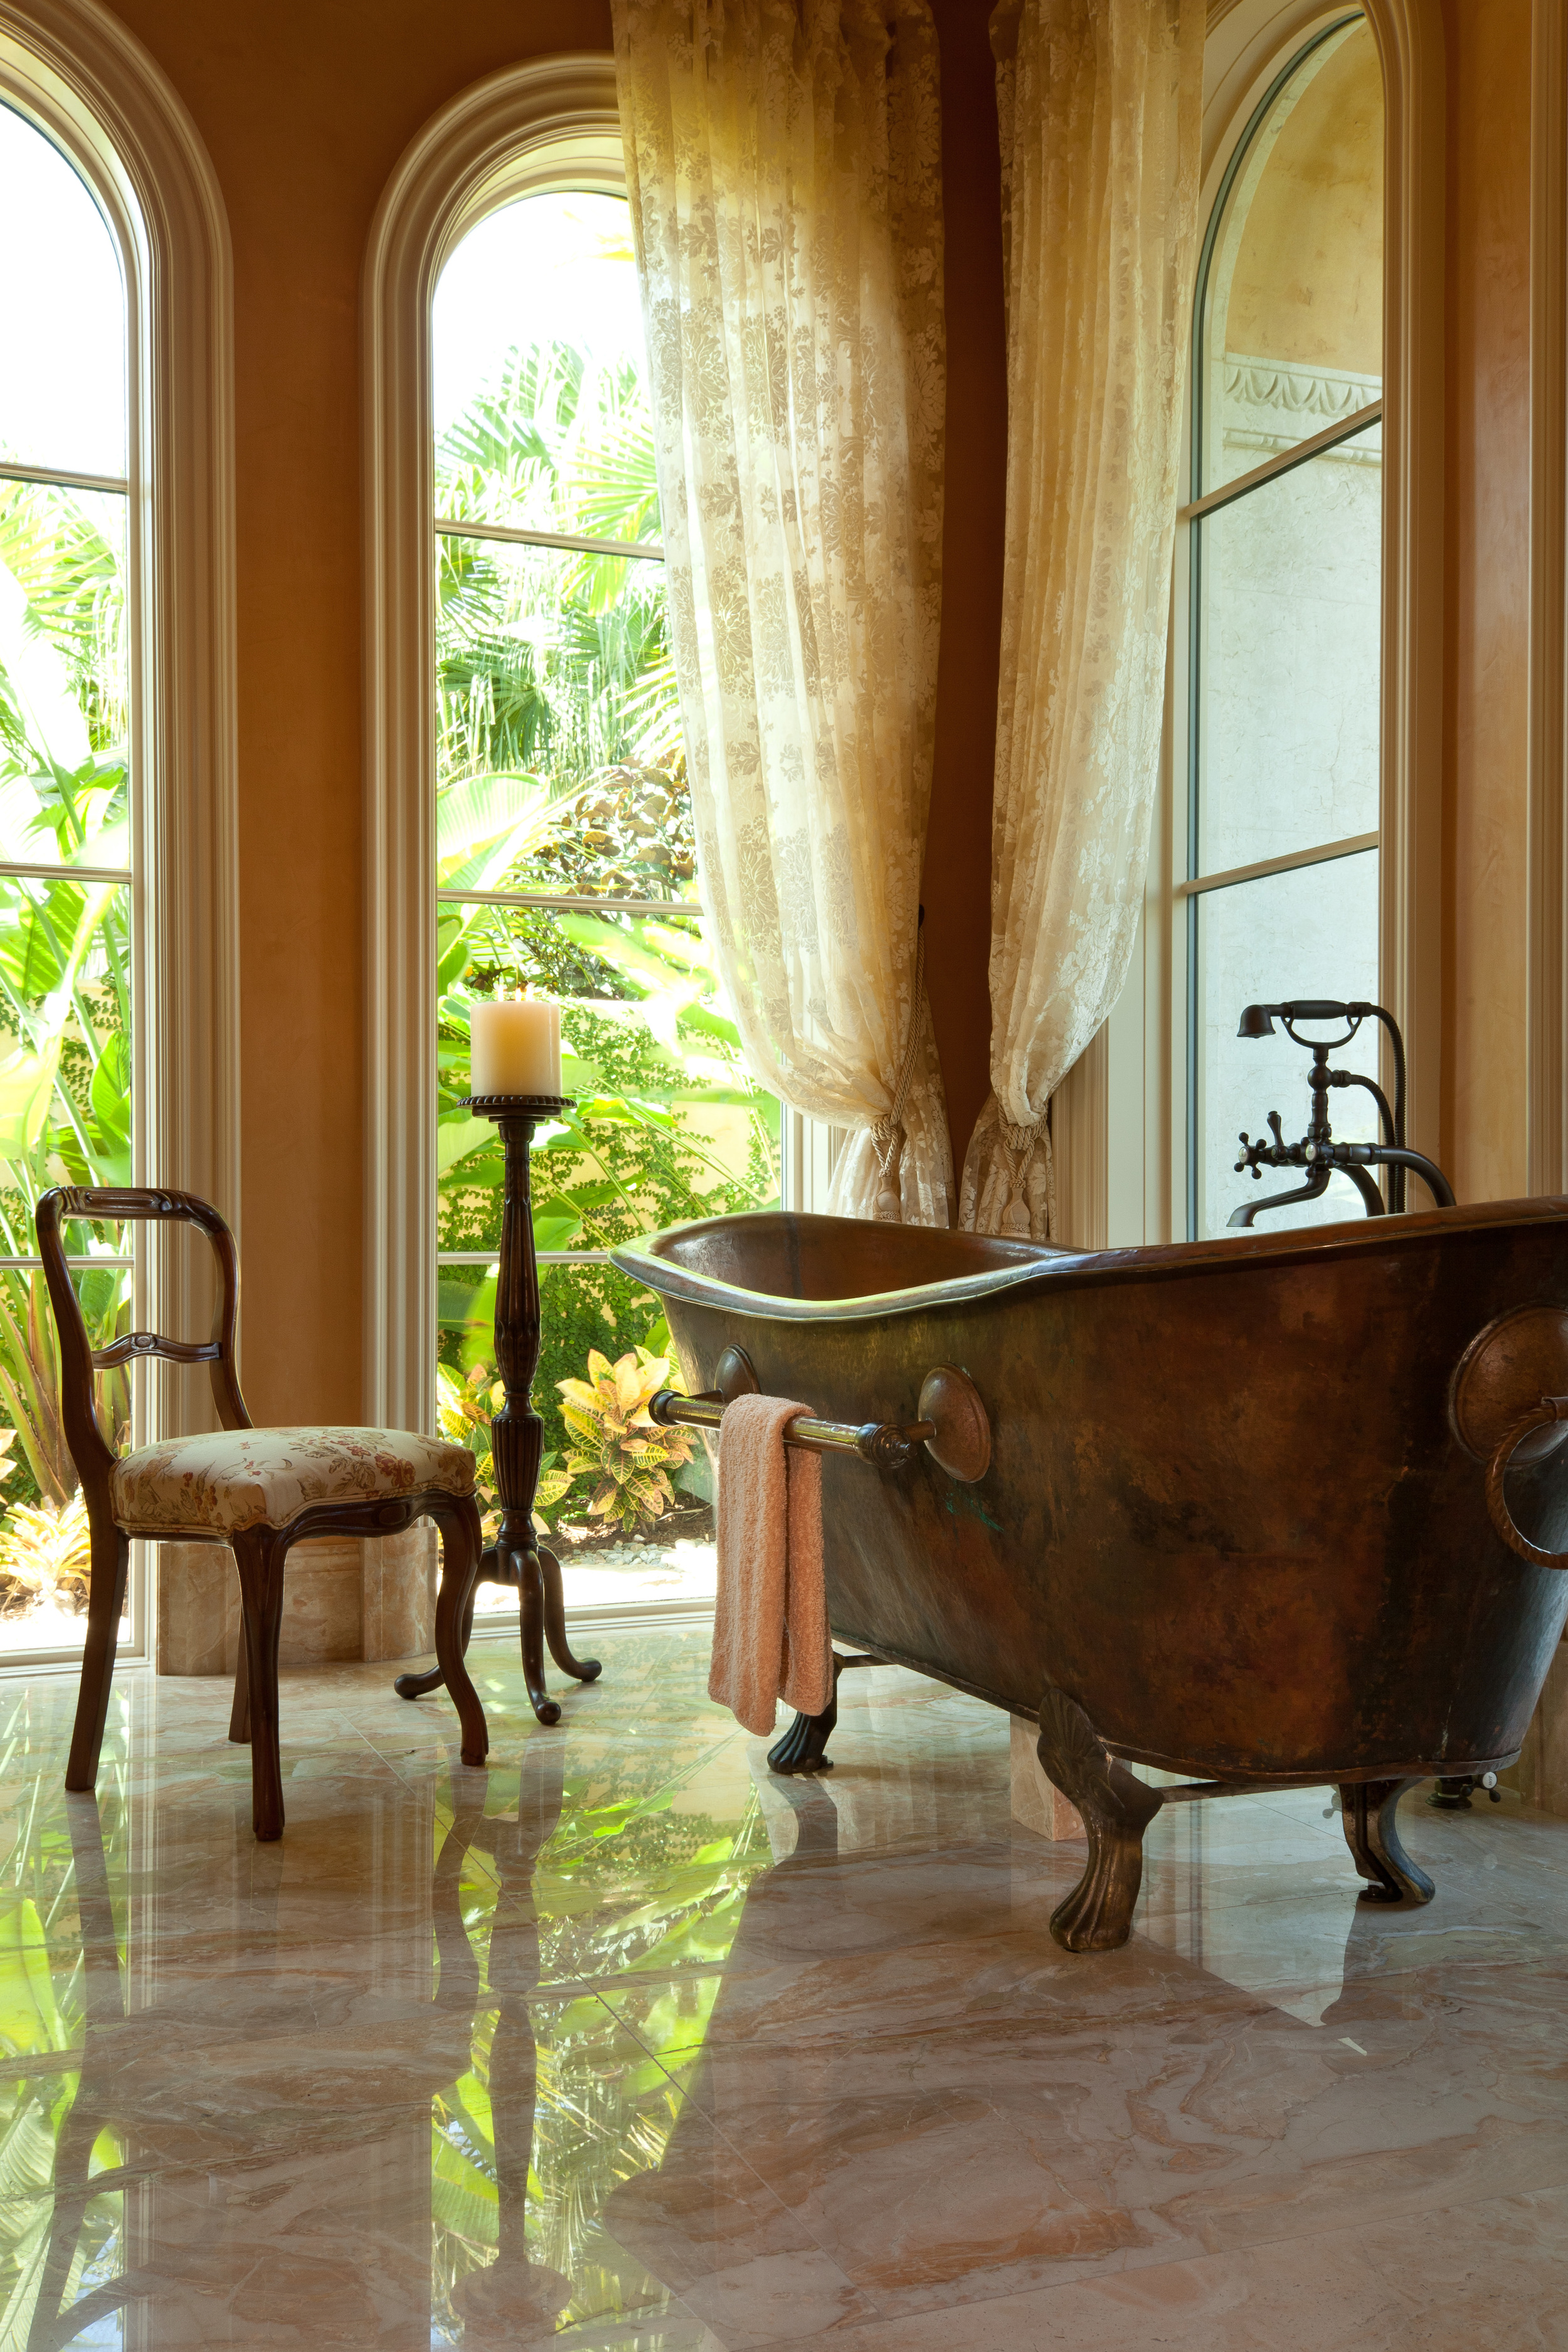 There is a view to a secluded courtyard from the antique French copper tub in the master bath of a remarkable Florida home, which is characterized by superbly detailed millwork.